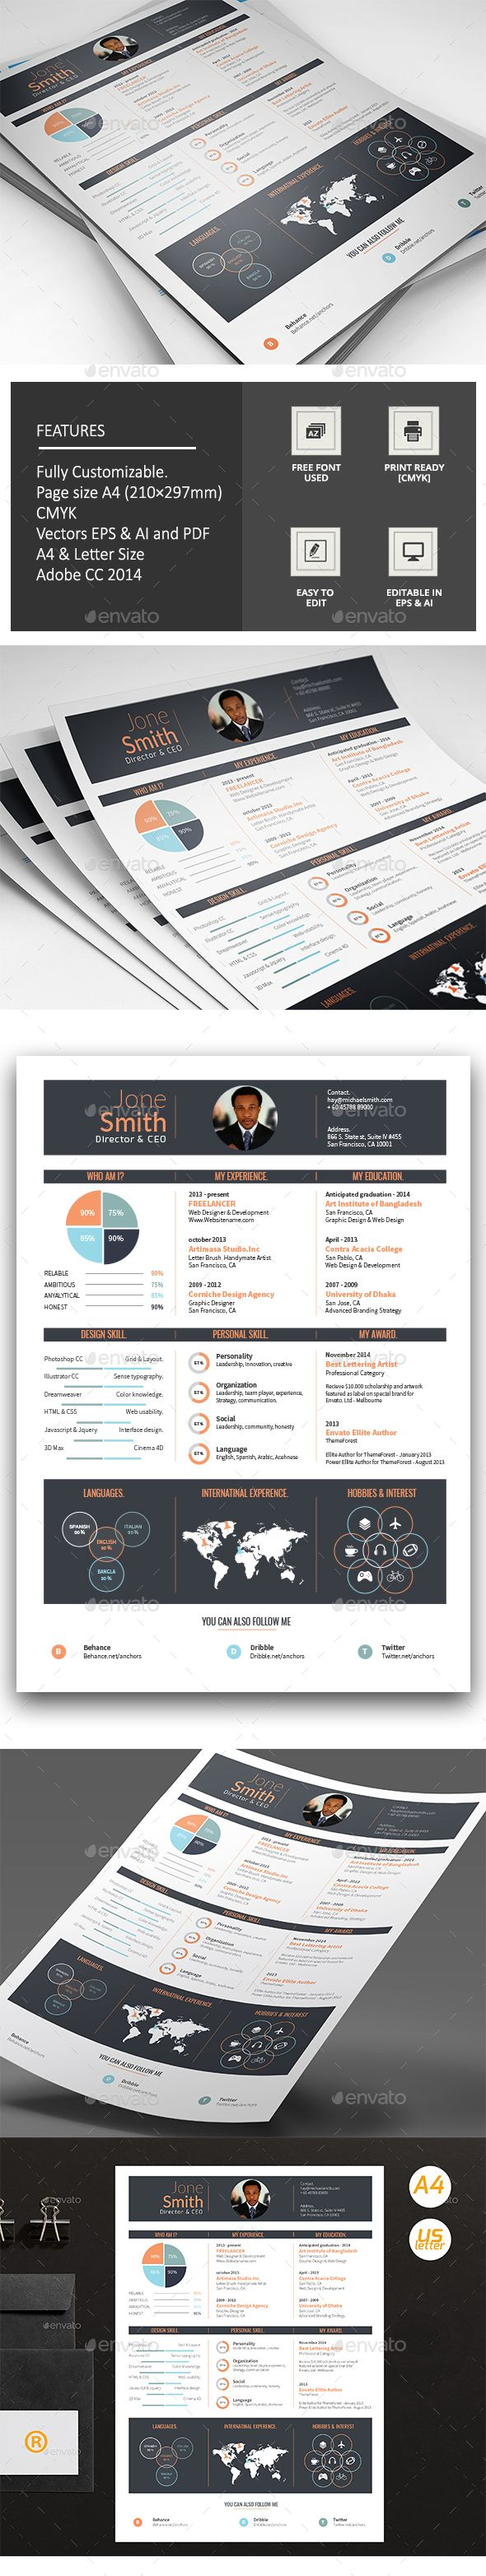 The 25+ best Infographic resume ideas on Pinterest | What is a cv ...